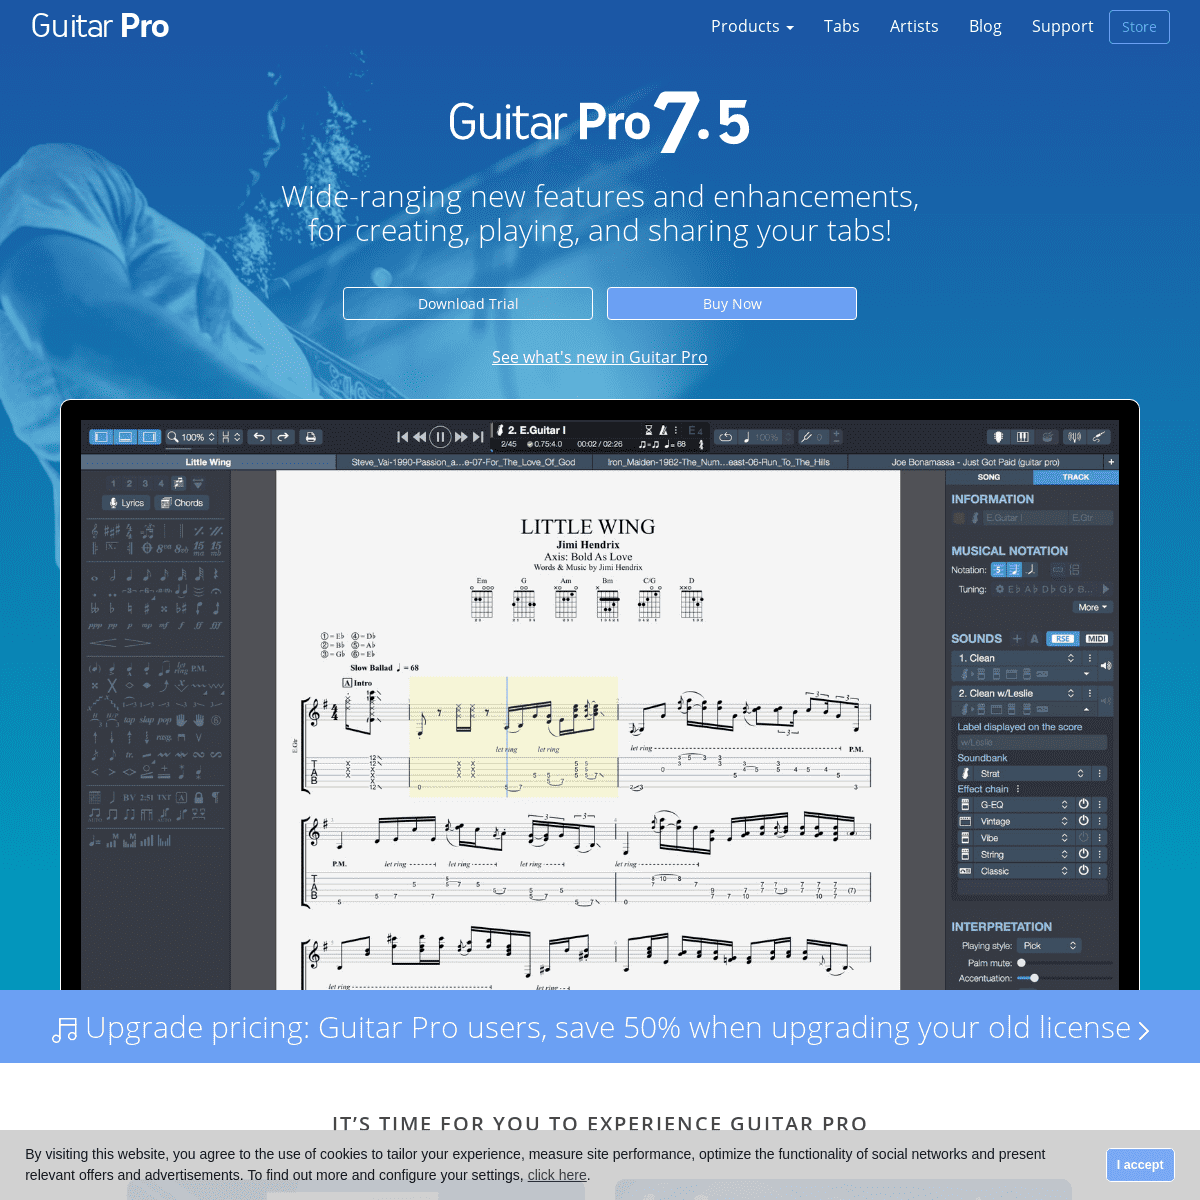 Guitar Pro - Sheet music editor software for guitar, bass, keyboards, drums and more...